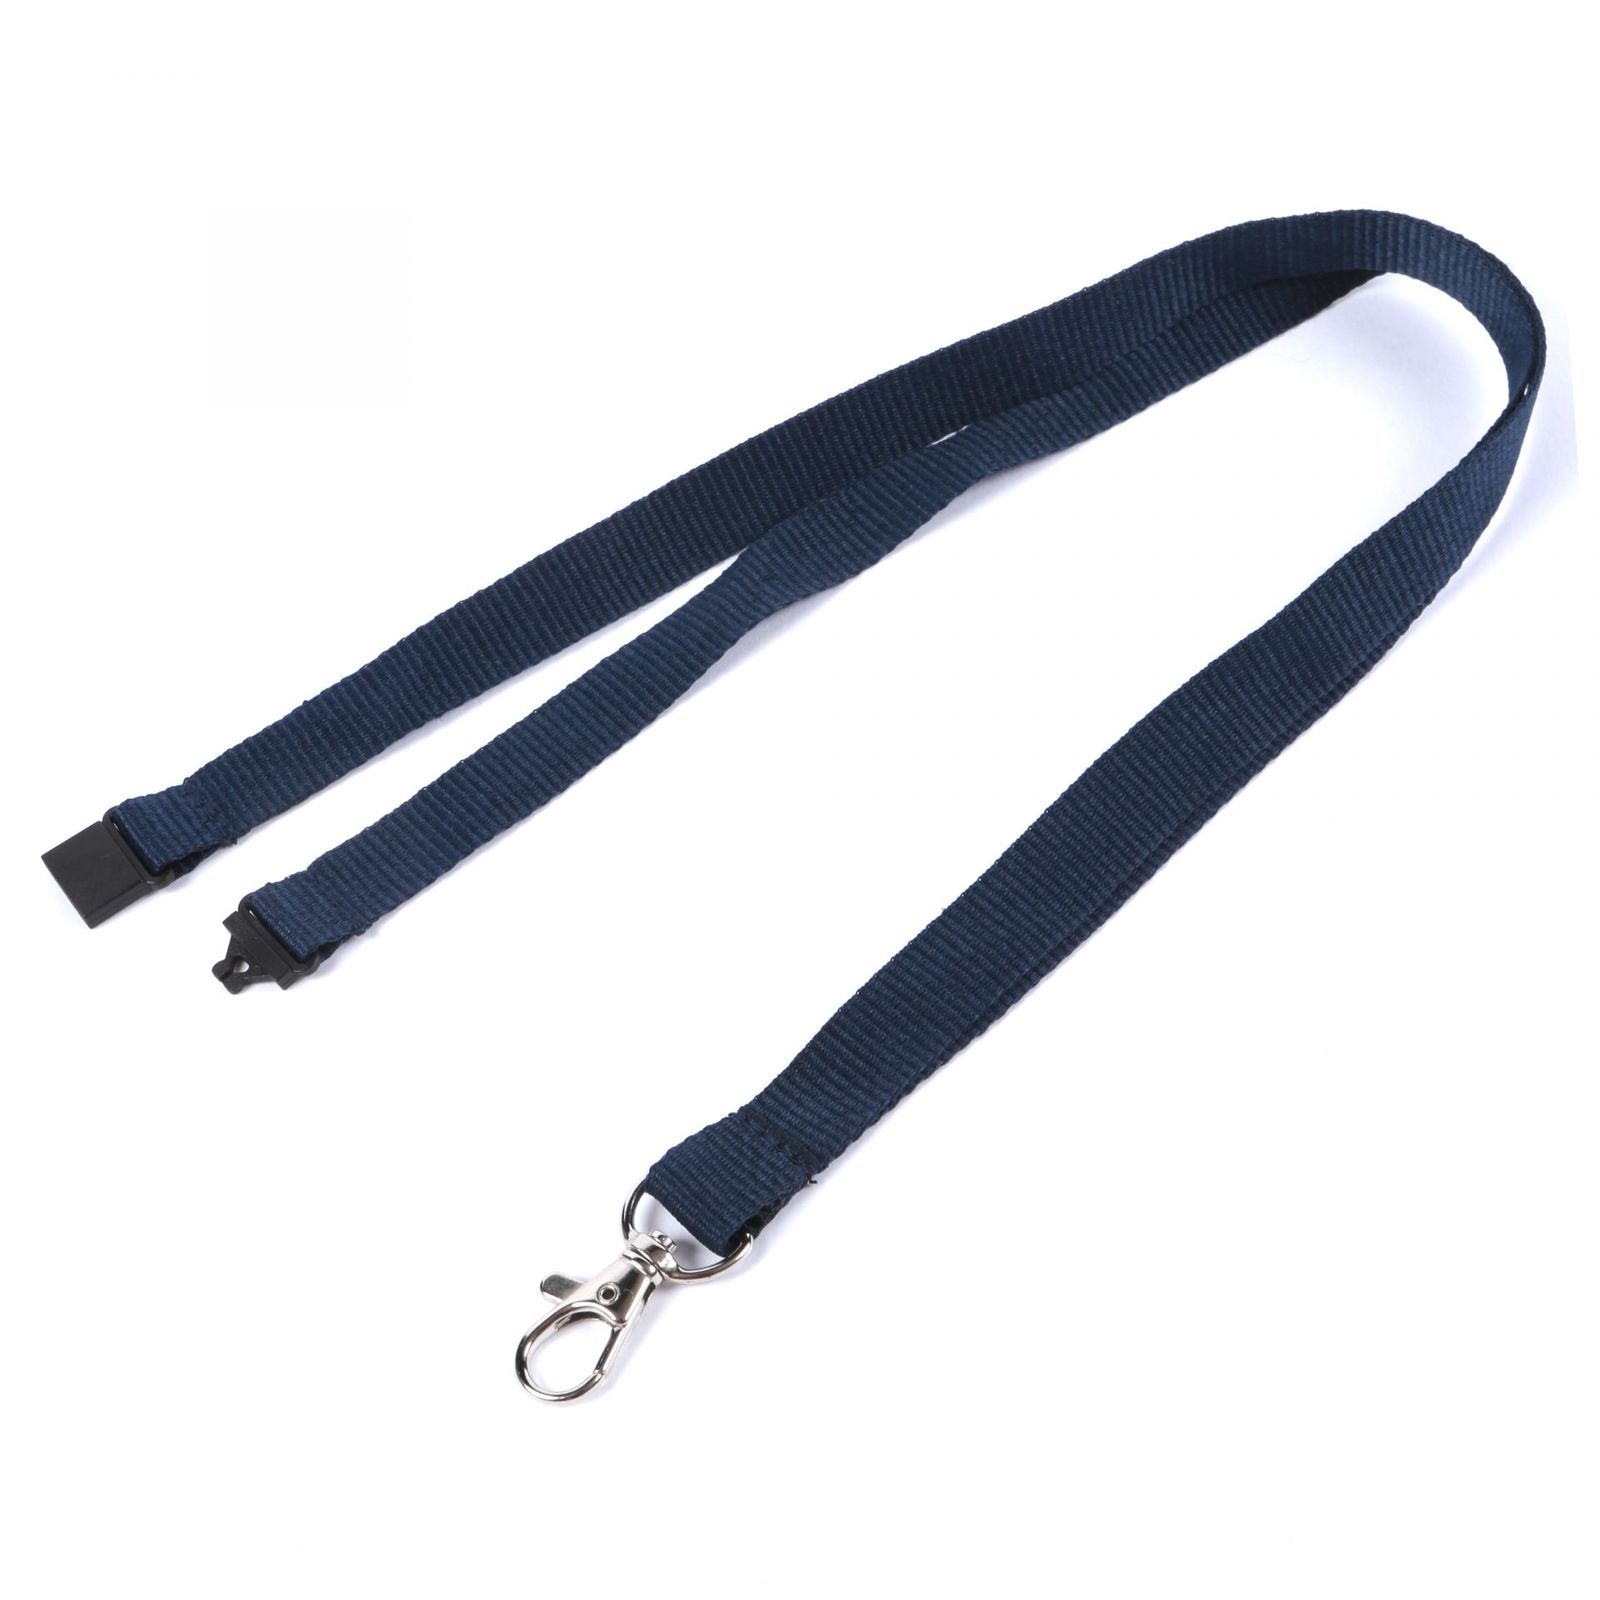 Buy Plain Navy Lanyards on Lanyards Direct Today!